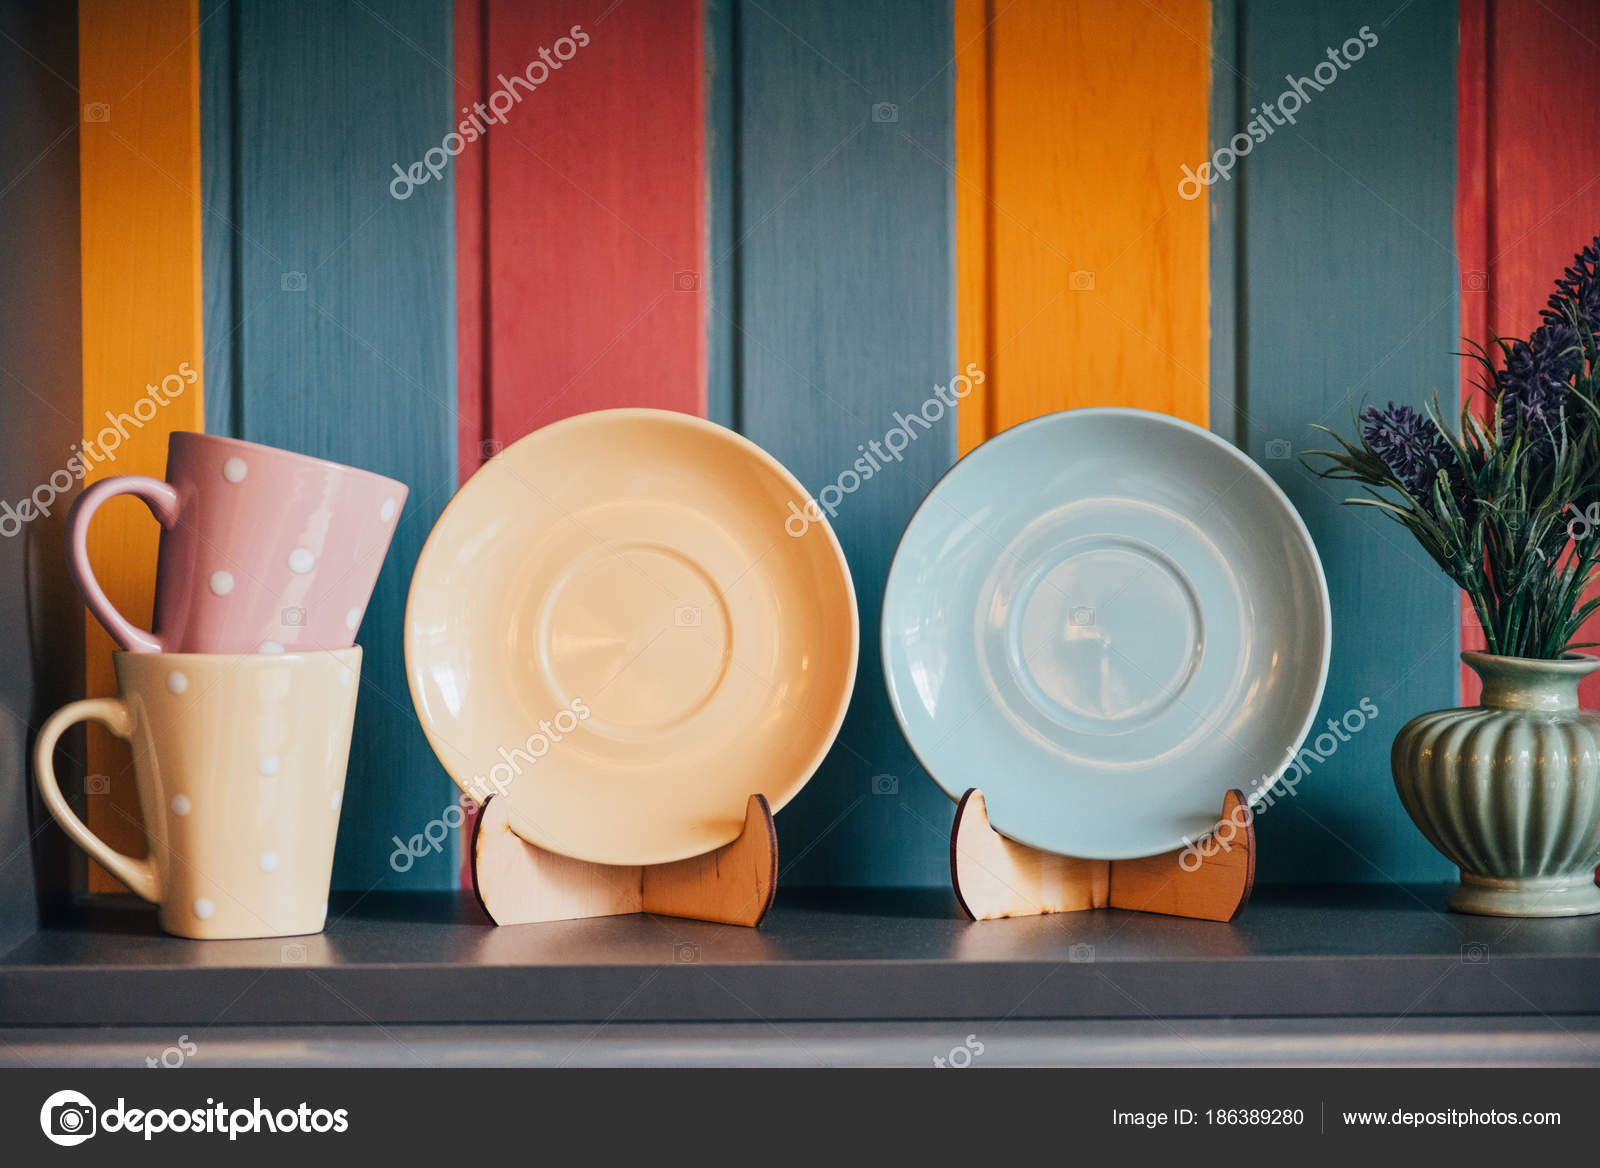 Close View Decorative Empty Plates Cups Colorful Wall Restaurant u2014 Stock Photo & Close View Decorative Empty Plates Cups Colorful Wall Restaurant ...